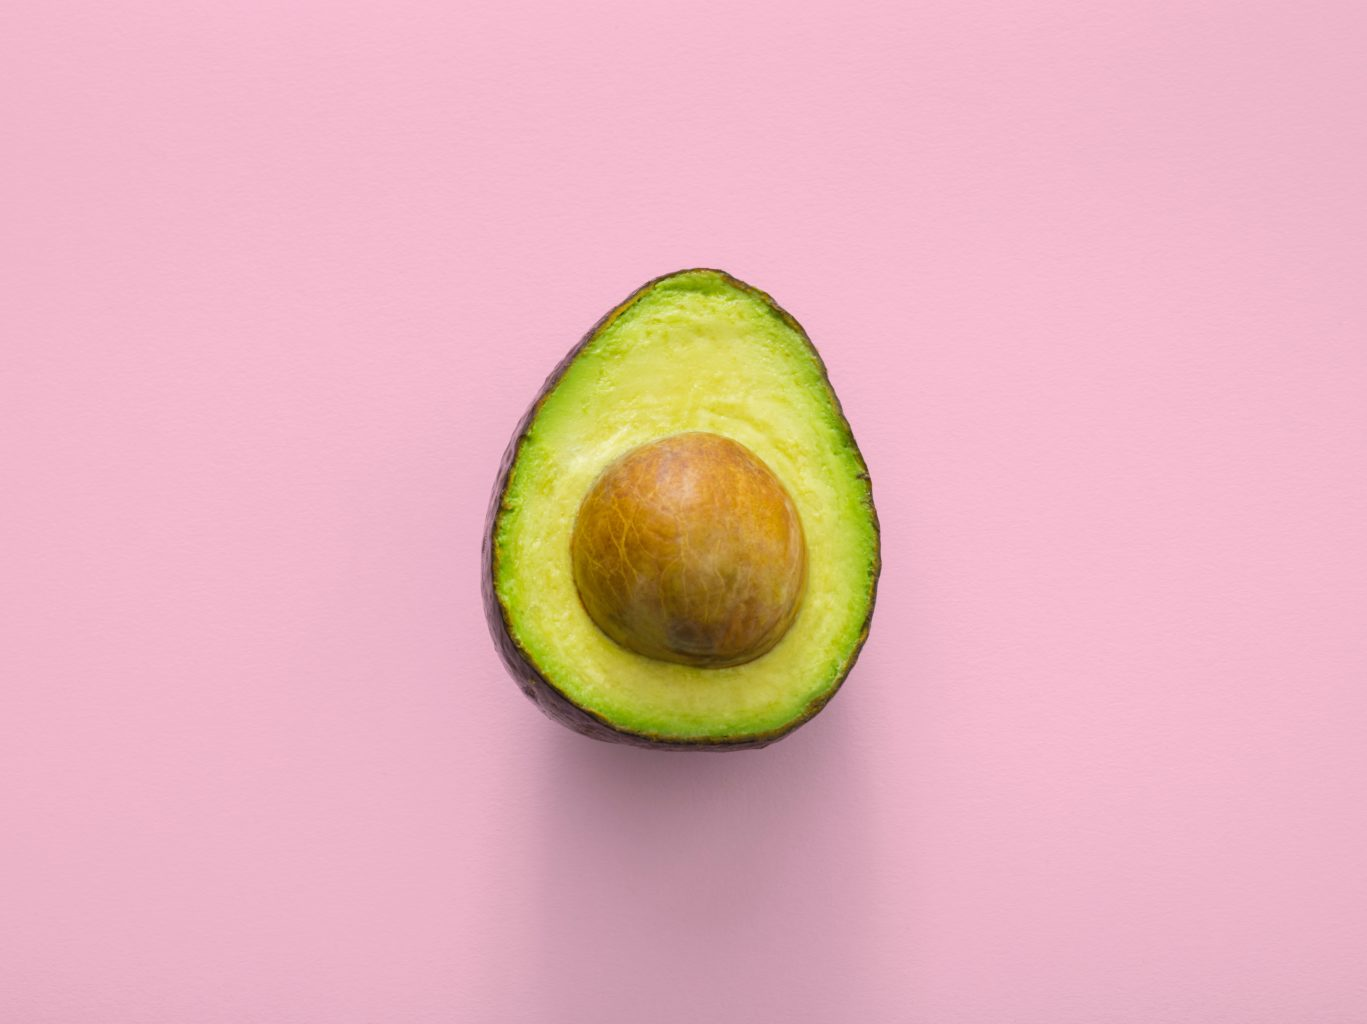 thought catalog 620865 unsplash - Avocado Nice-Cream: The Future is Now